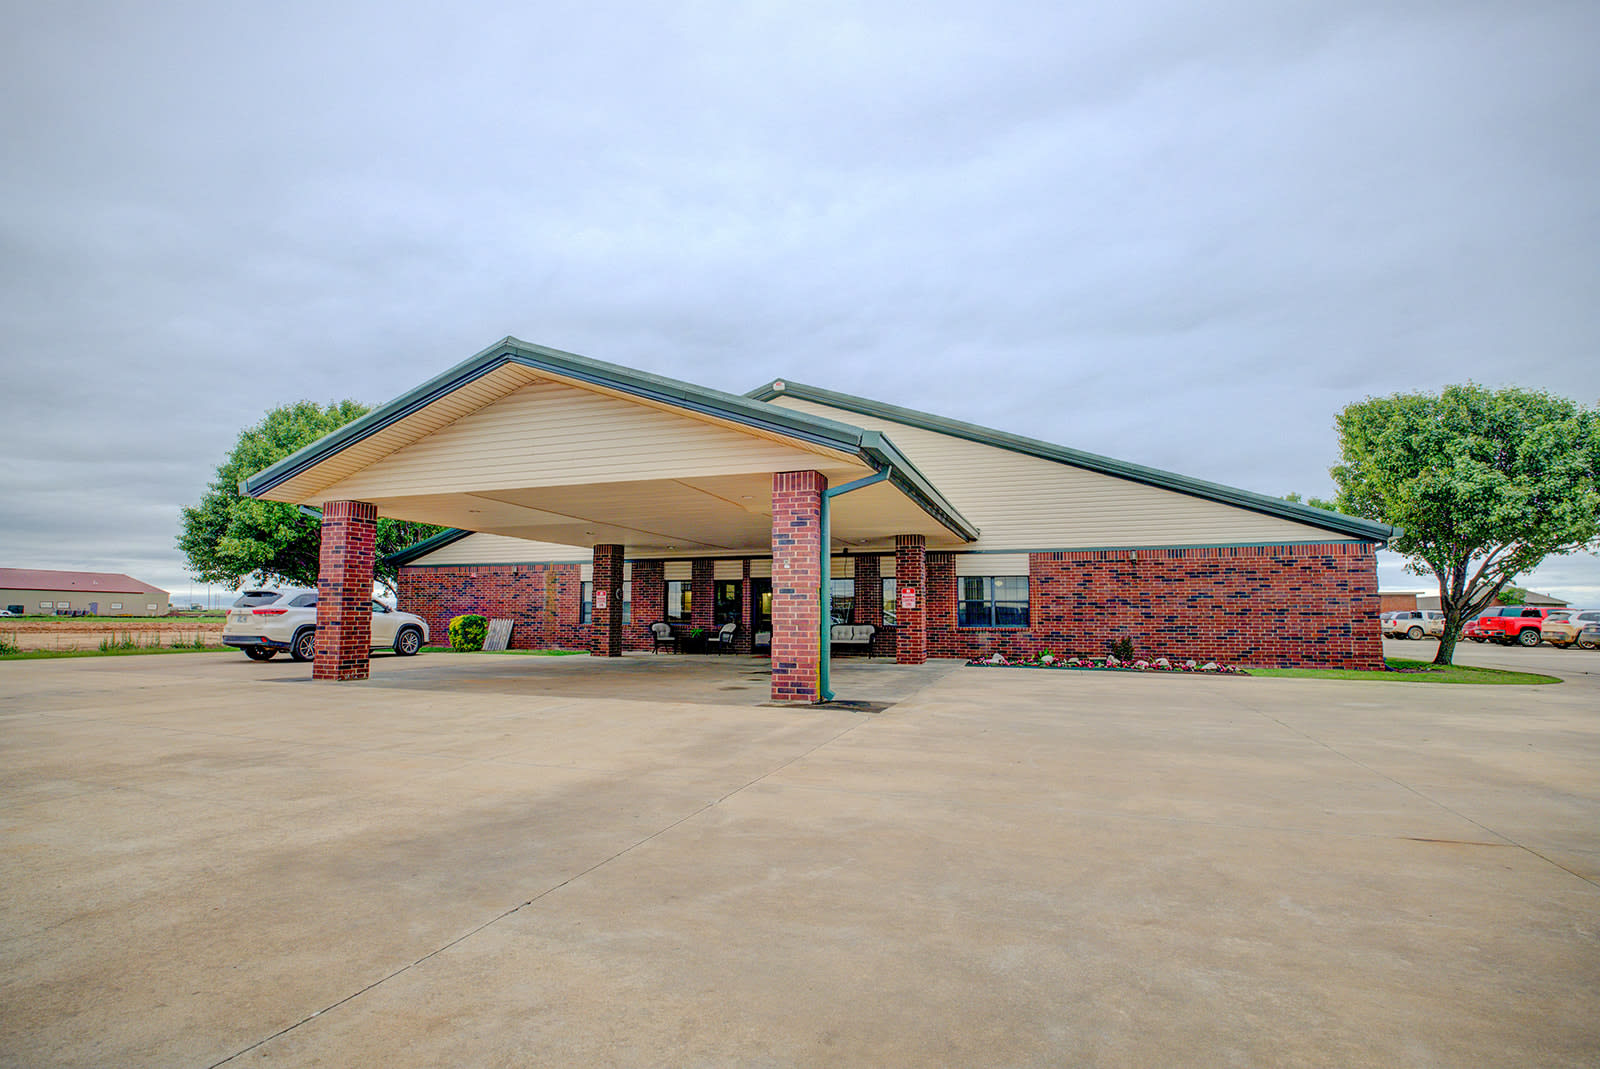 Photo 1 of Countrywood Assisted Living and Memory Care